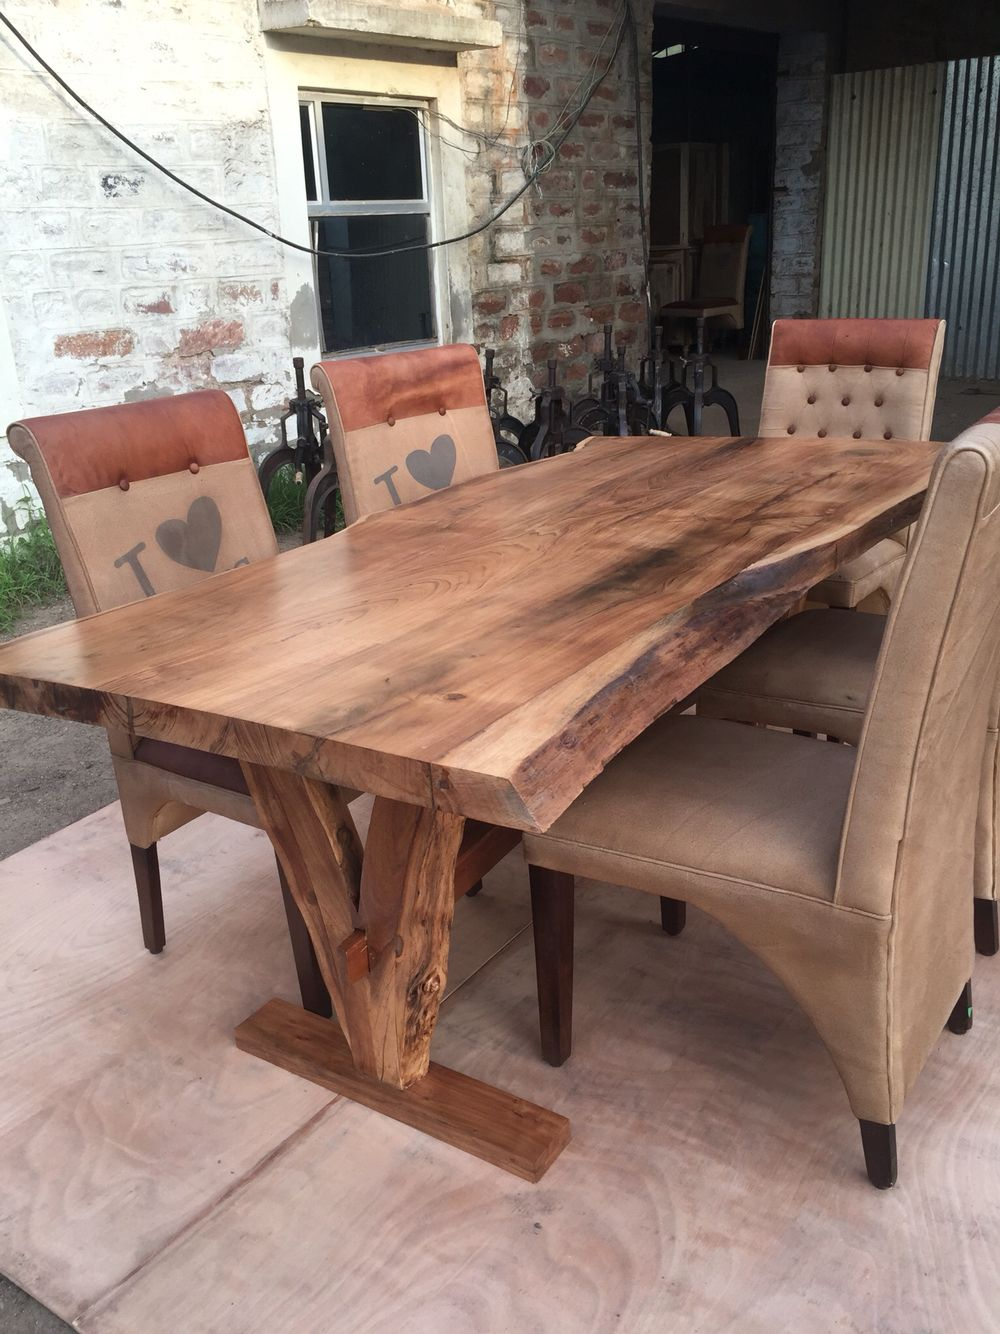 Where Can I Find Solid Wood Furniture